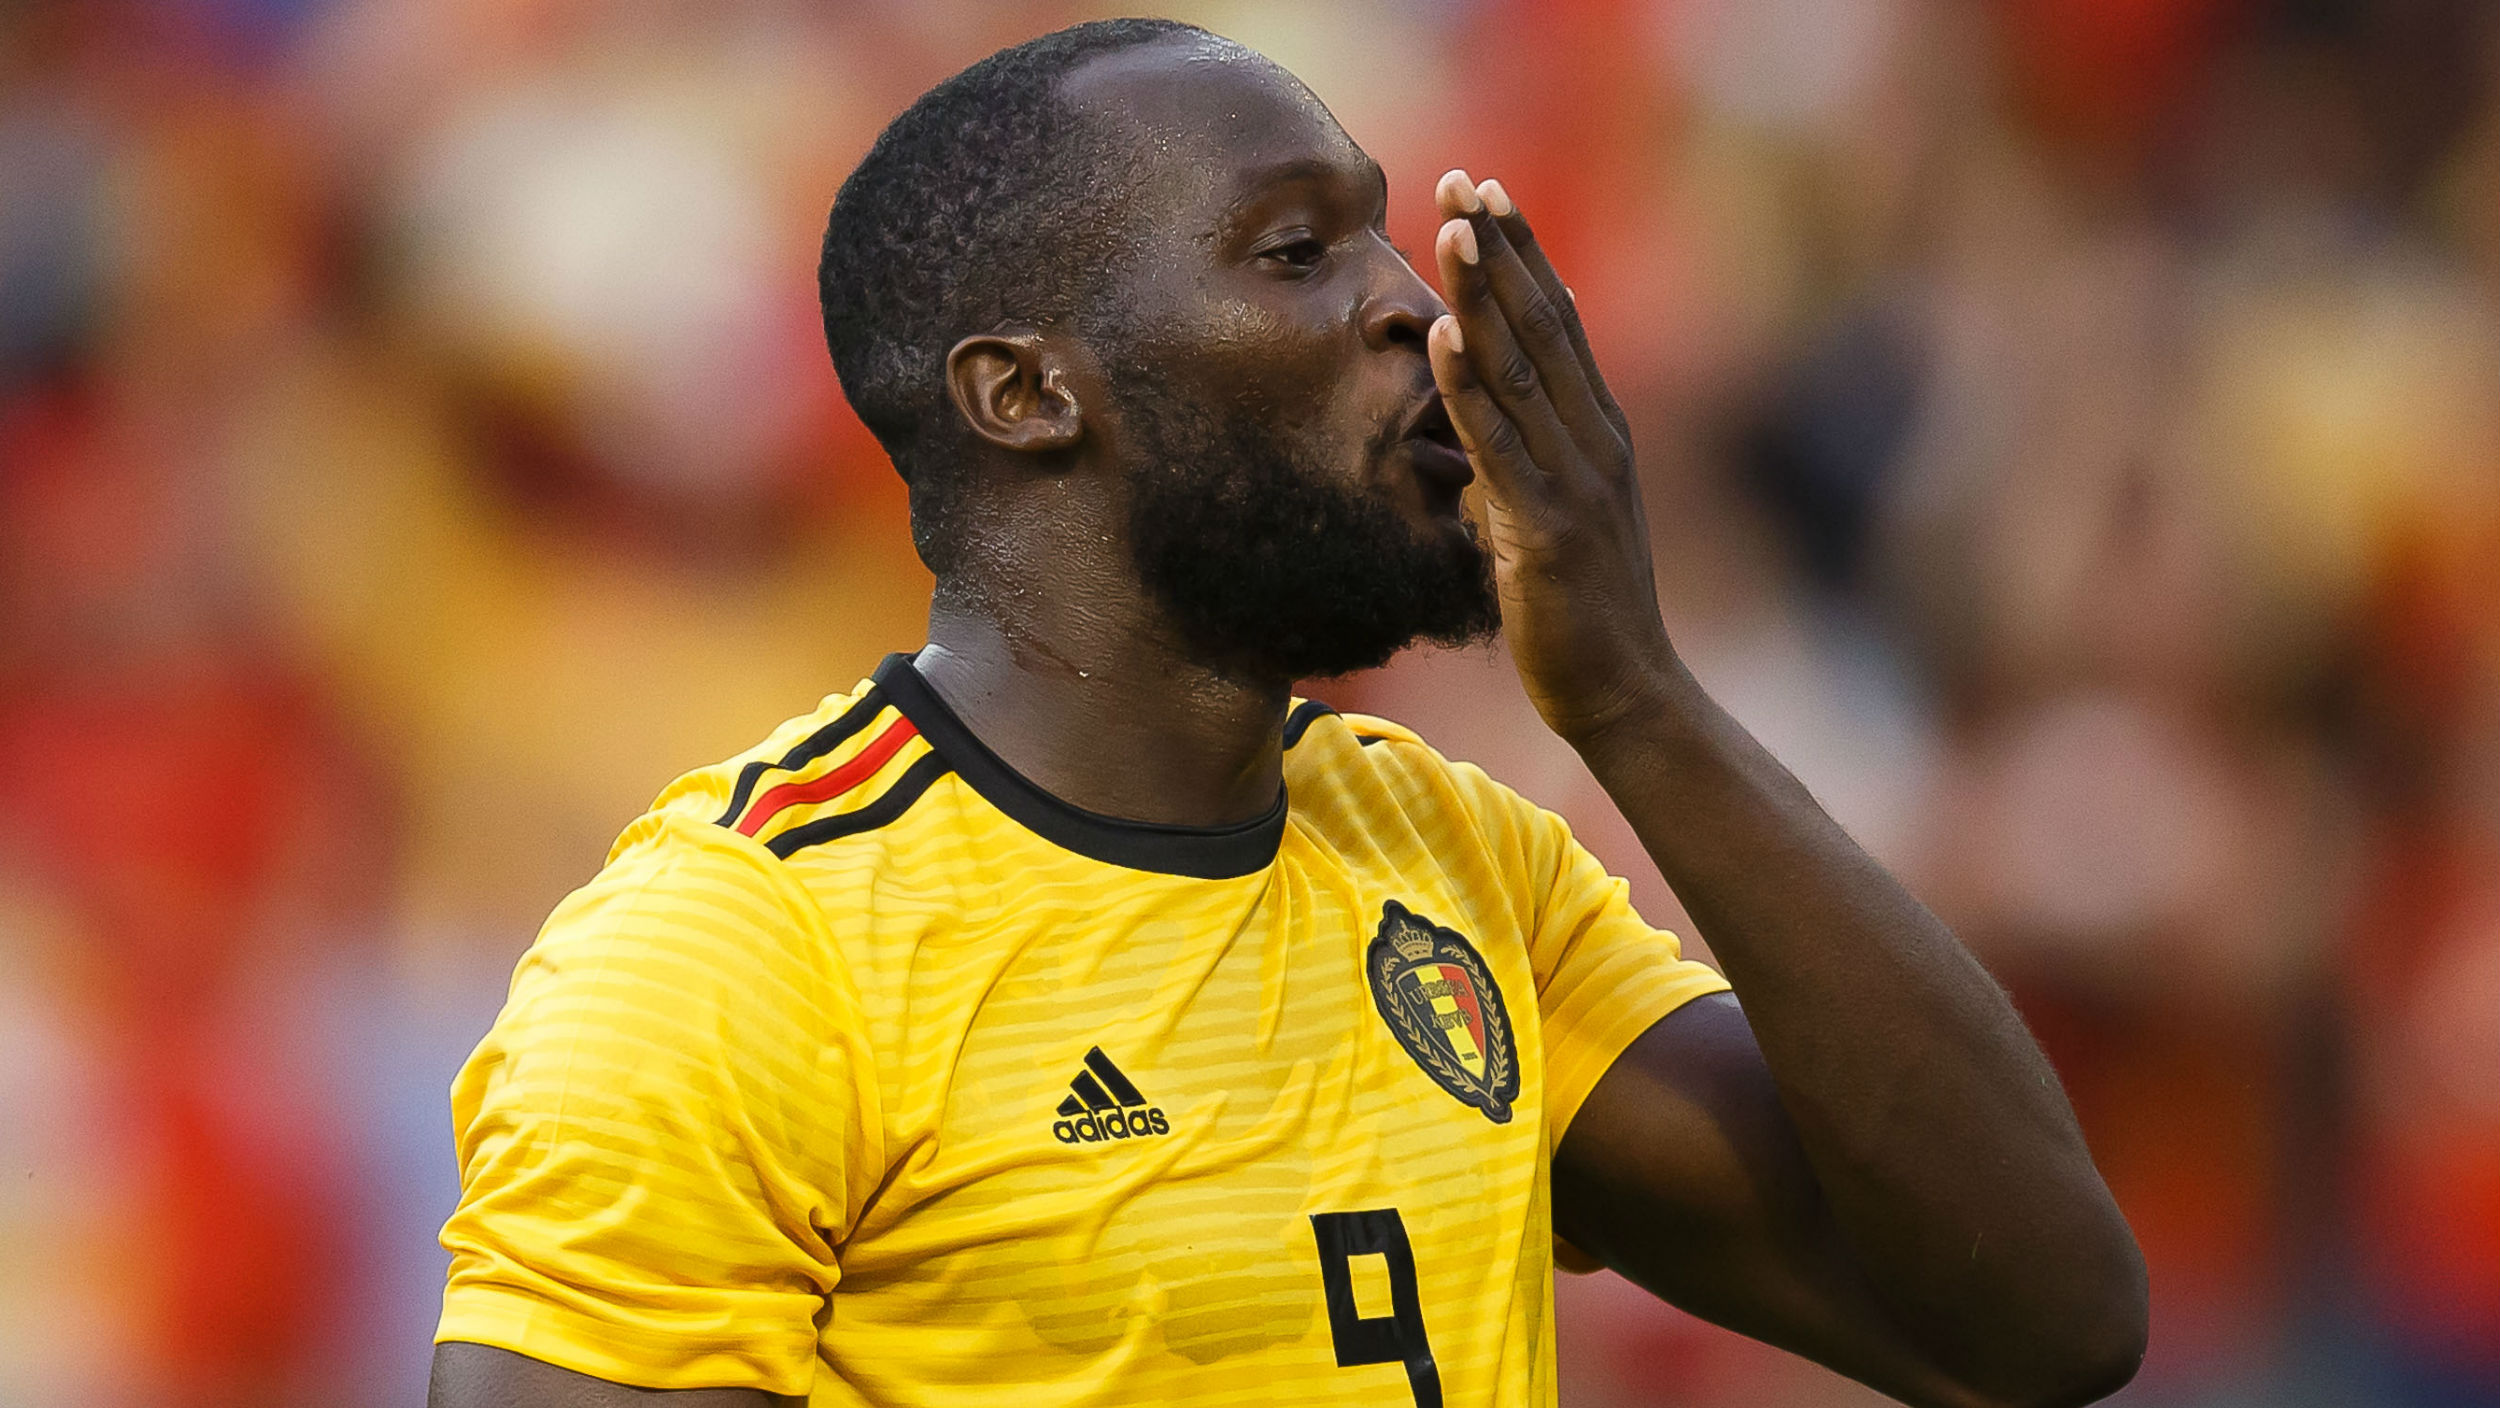 Eden Hazard accuses Belgium team-mate Romelu Lukaku of 'hiding' in Panama win